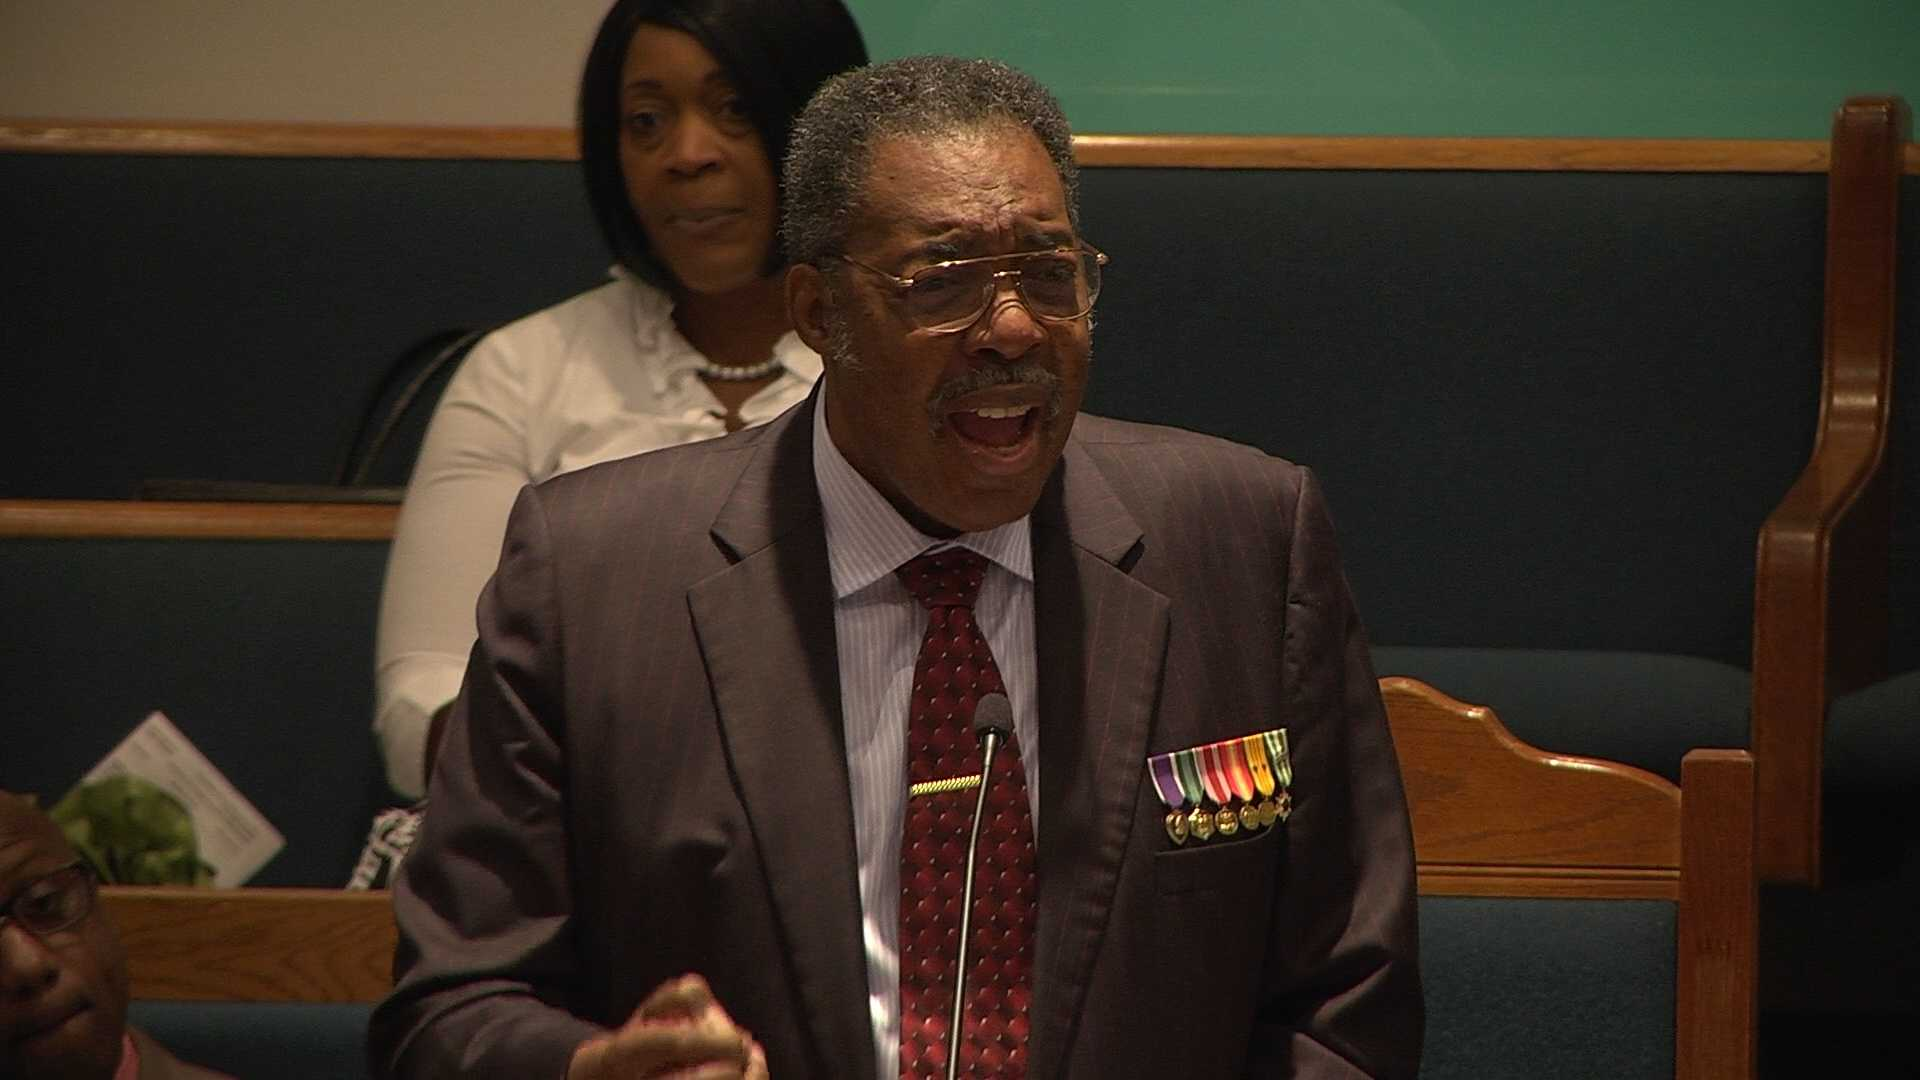 Henry Thomas was one of 13 civil rights activists, both black and white, who rode a Greyhound bus into the South through Anniston on May 14, 1961. Thomas is speaking in Alabama this week.